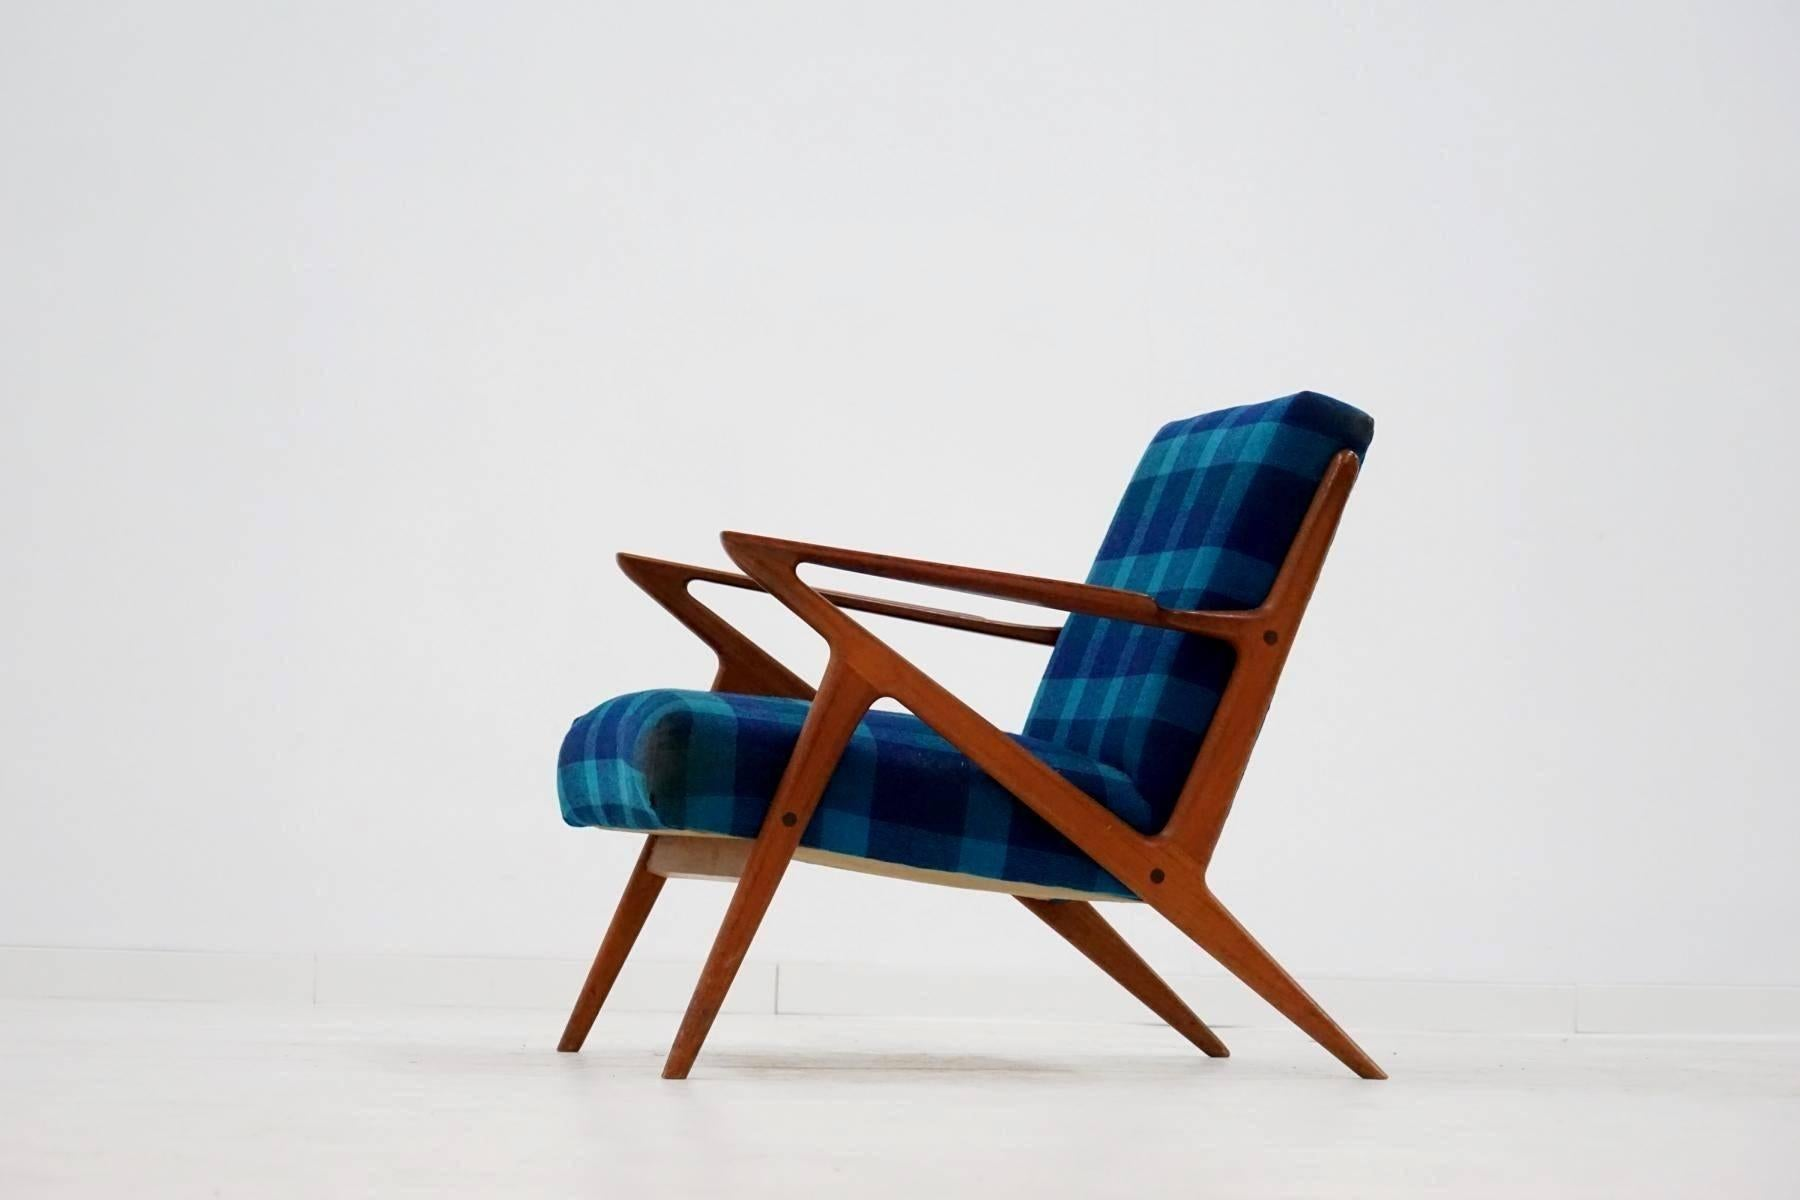 Z Lounge Armchair Chair By Poul Jensen And Selig Midcentury Danish Modern 1950s For At 1stdibs